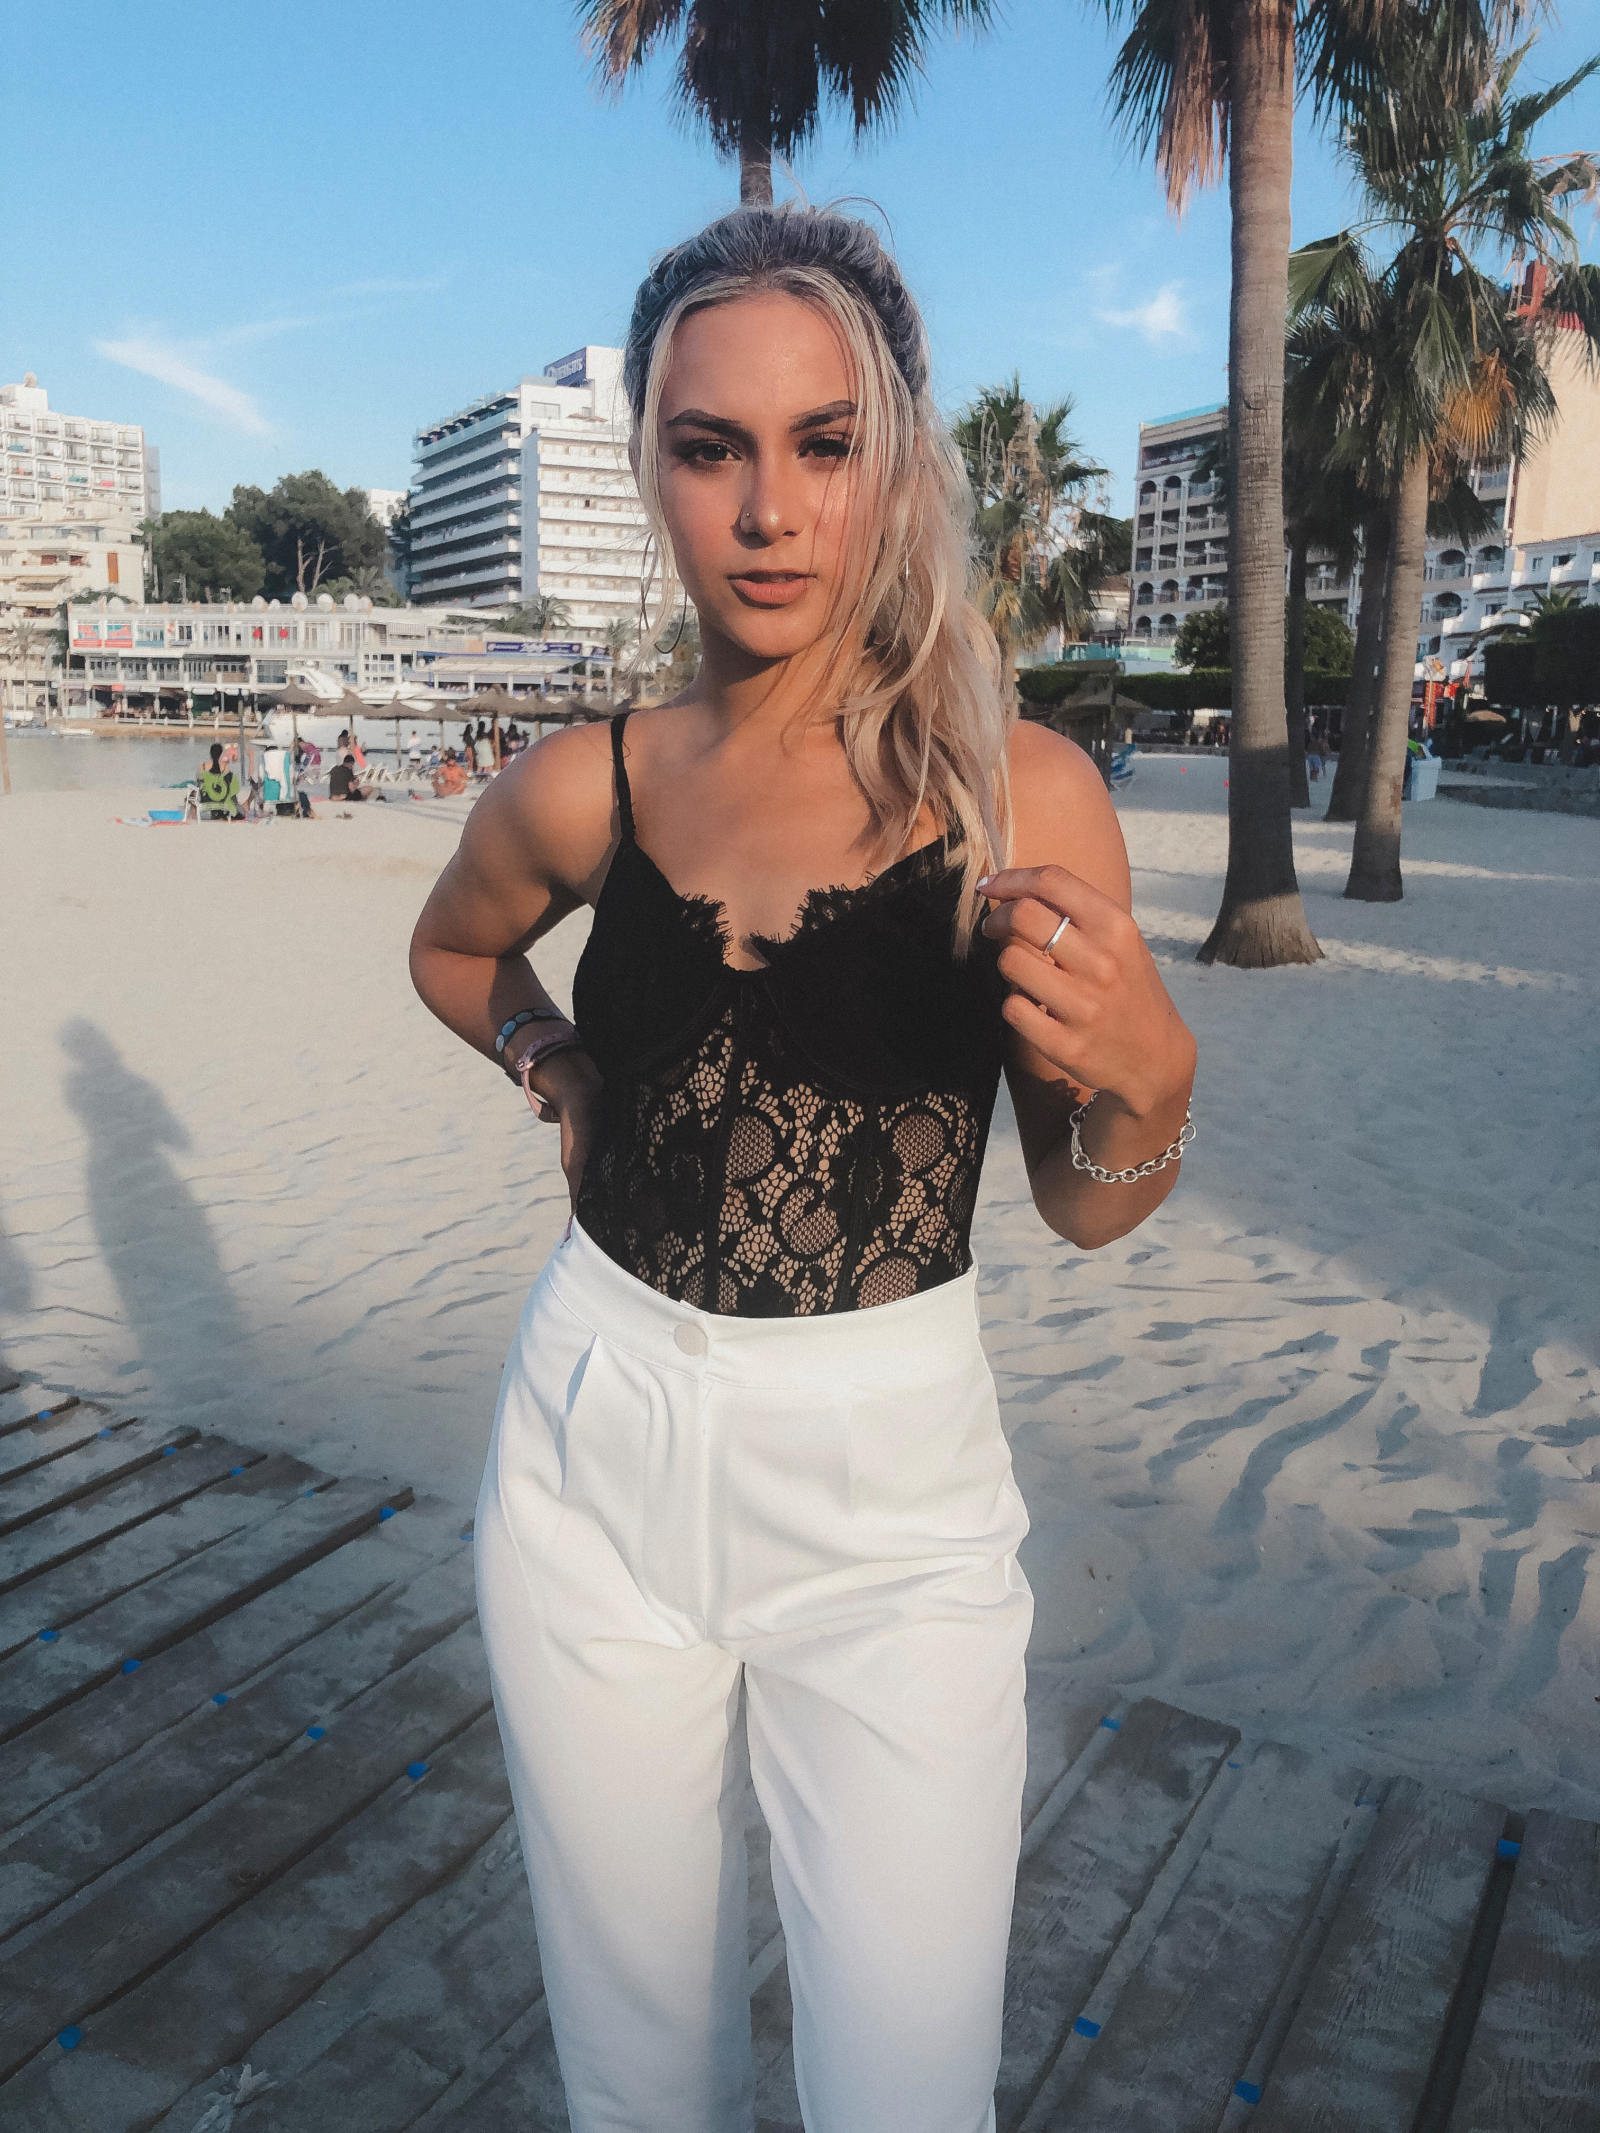 yasmin stefanie missguided black lace body boohoo white tailored trousers